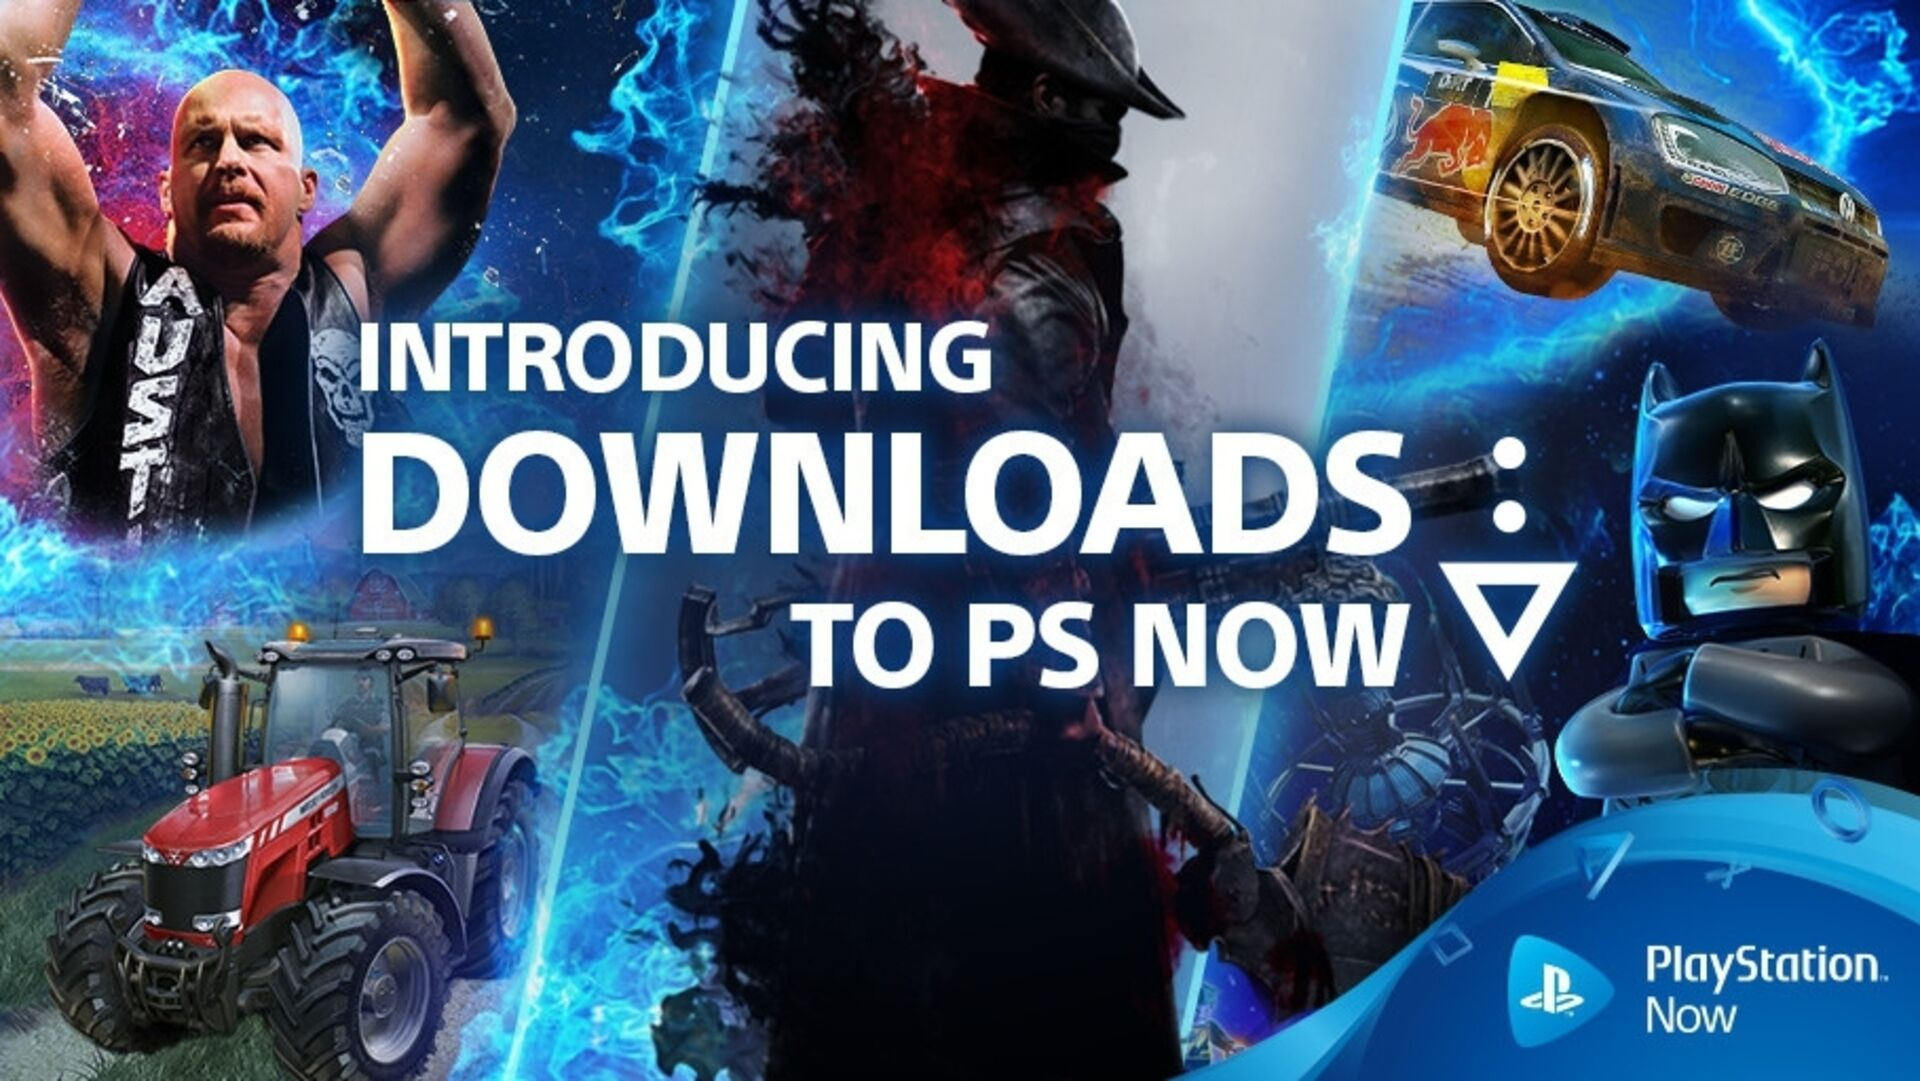 PlayStation Now lets you download games onto your PS4